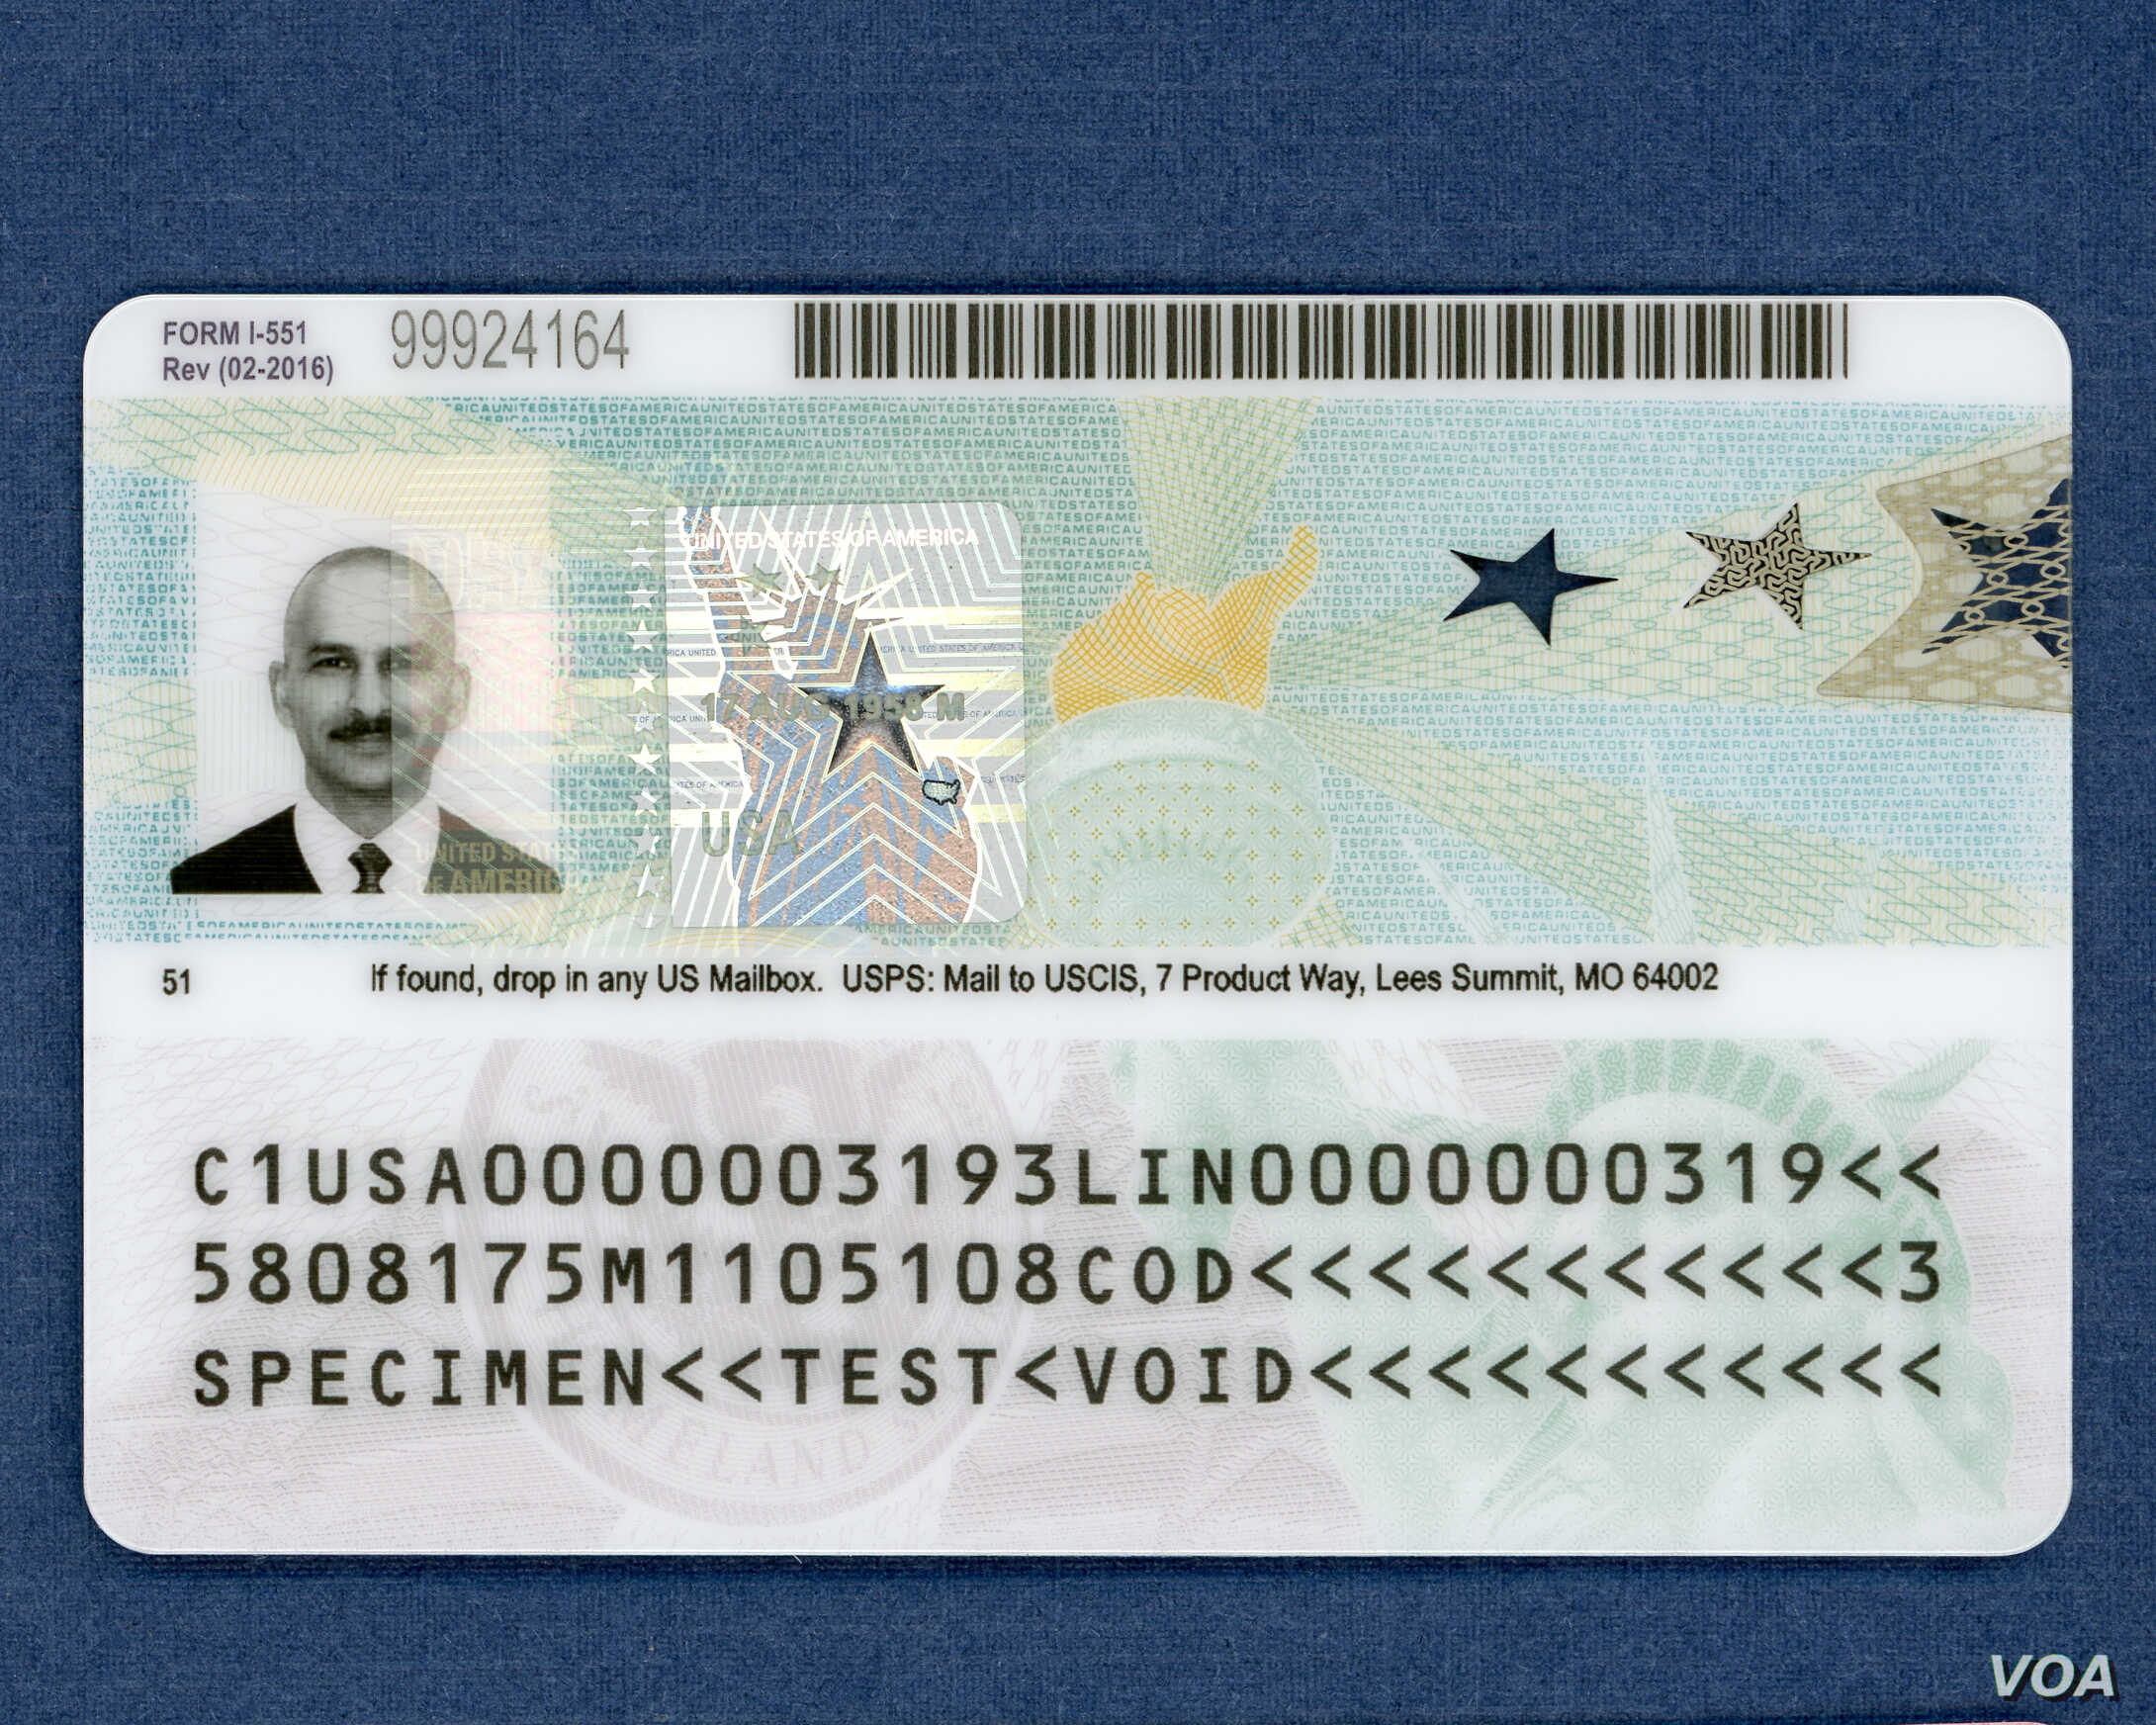 The back of the new tamper-resistant green cards issued by U.S. Citizenship and Immigration Services. (Photo courtesy of USCIS)